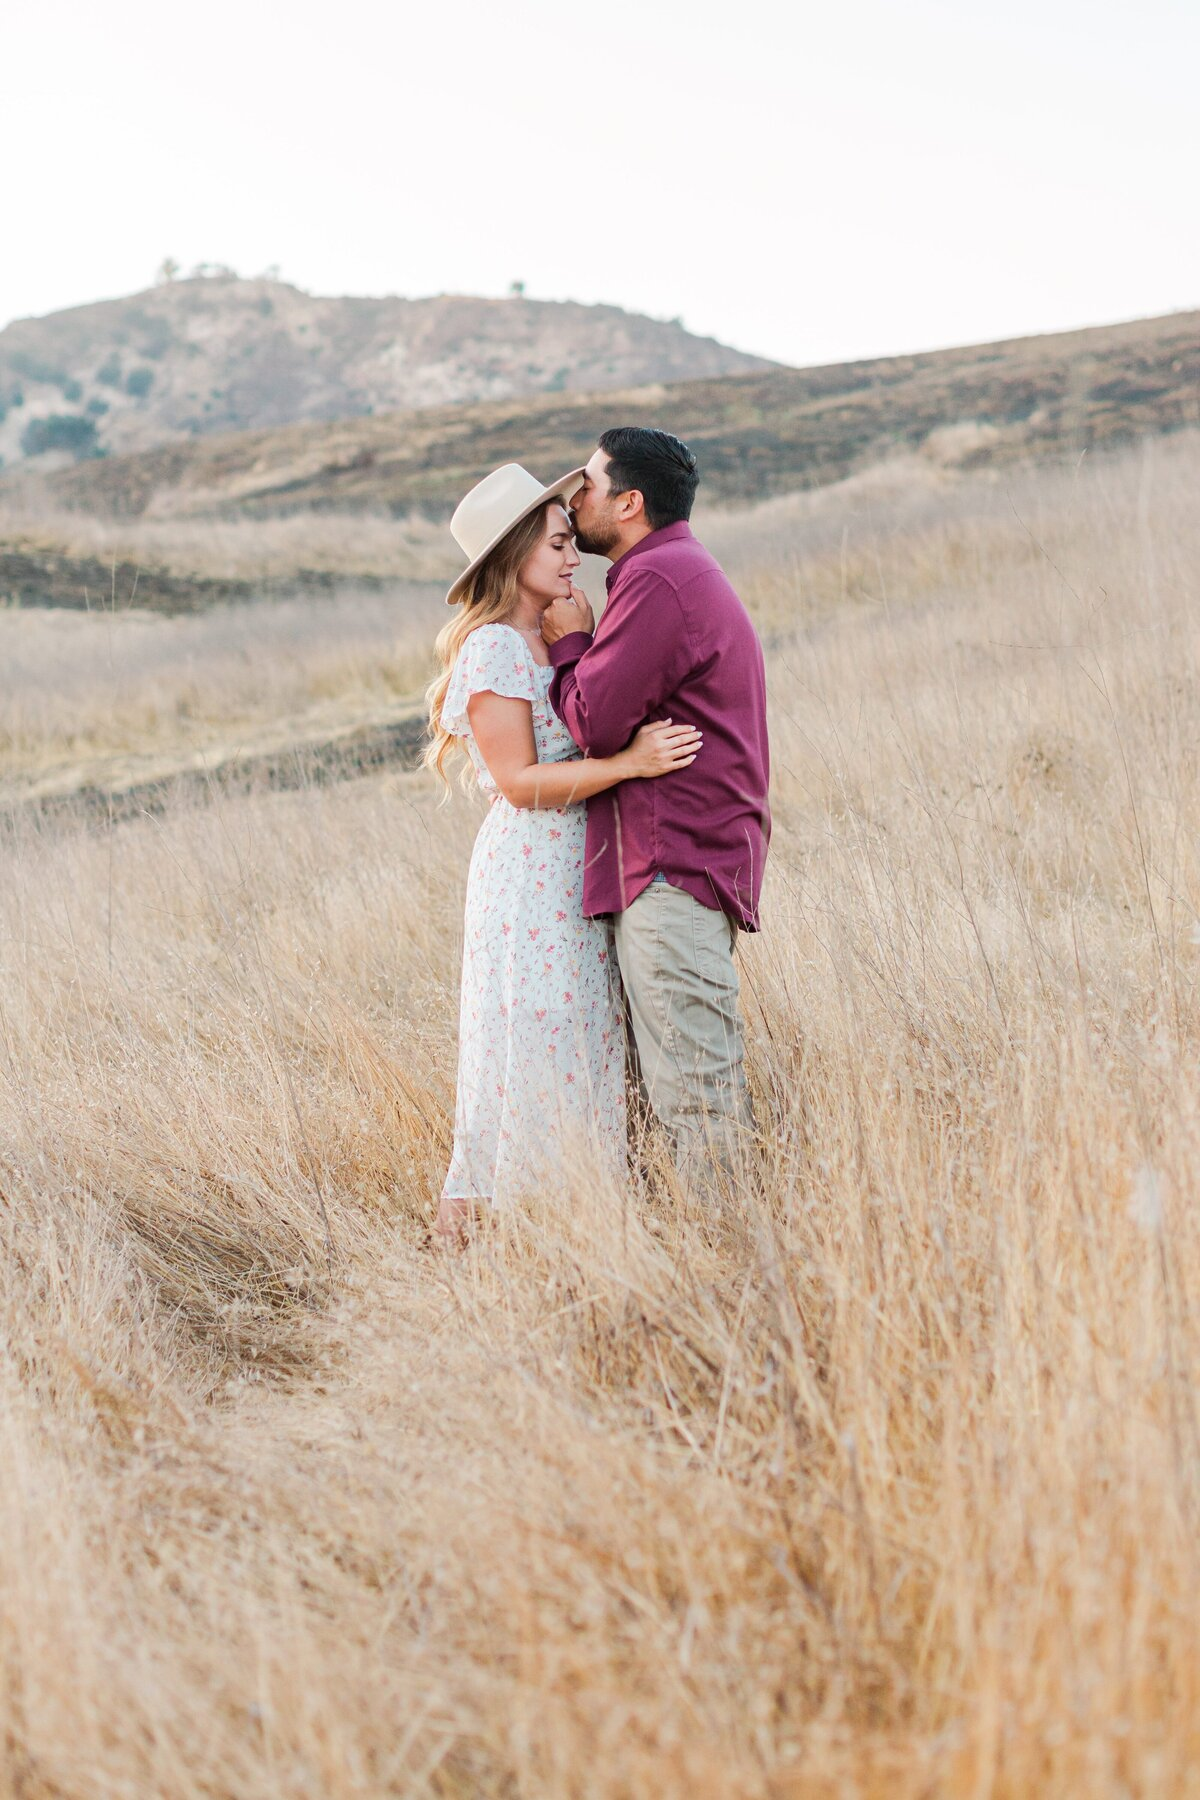 blog-Malibu-State-Creek-Park-Engagament-Shoot-boho-0084